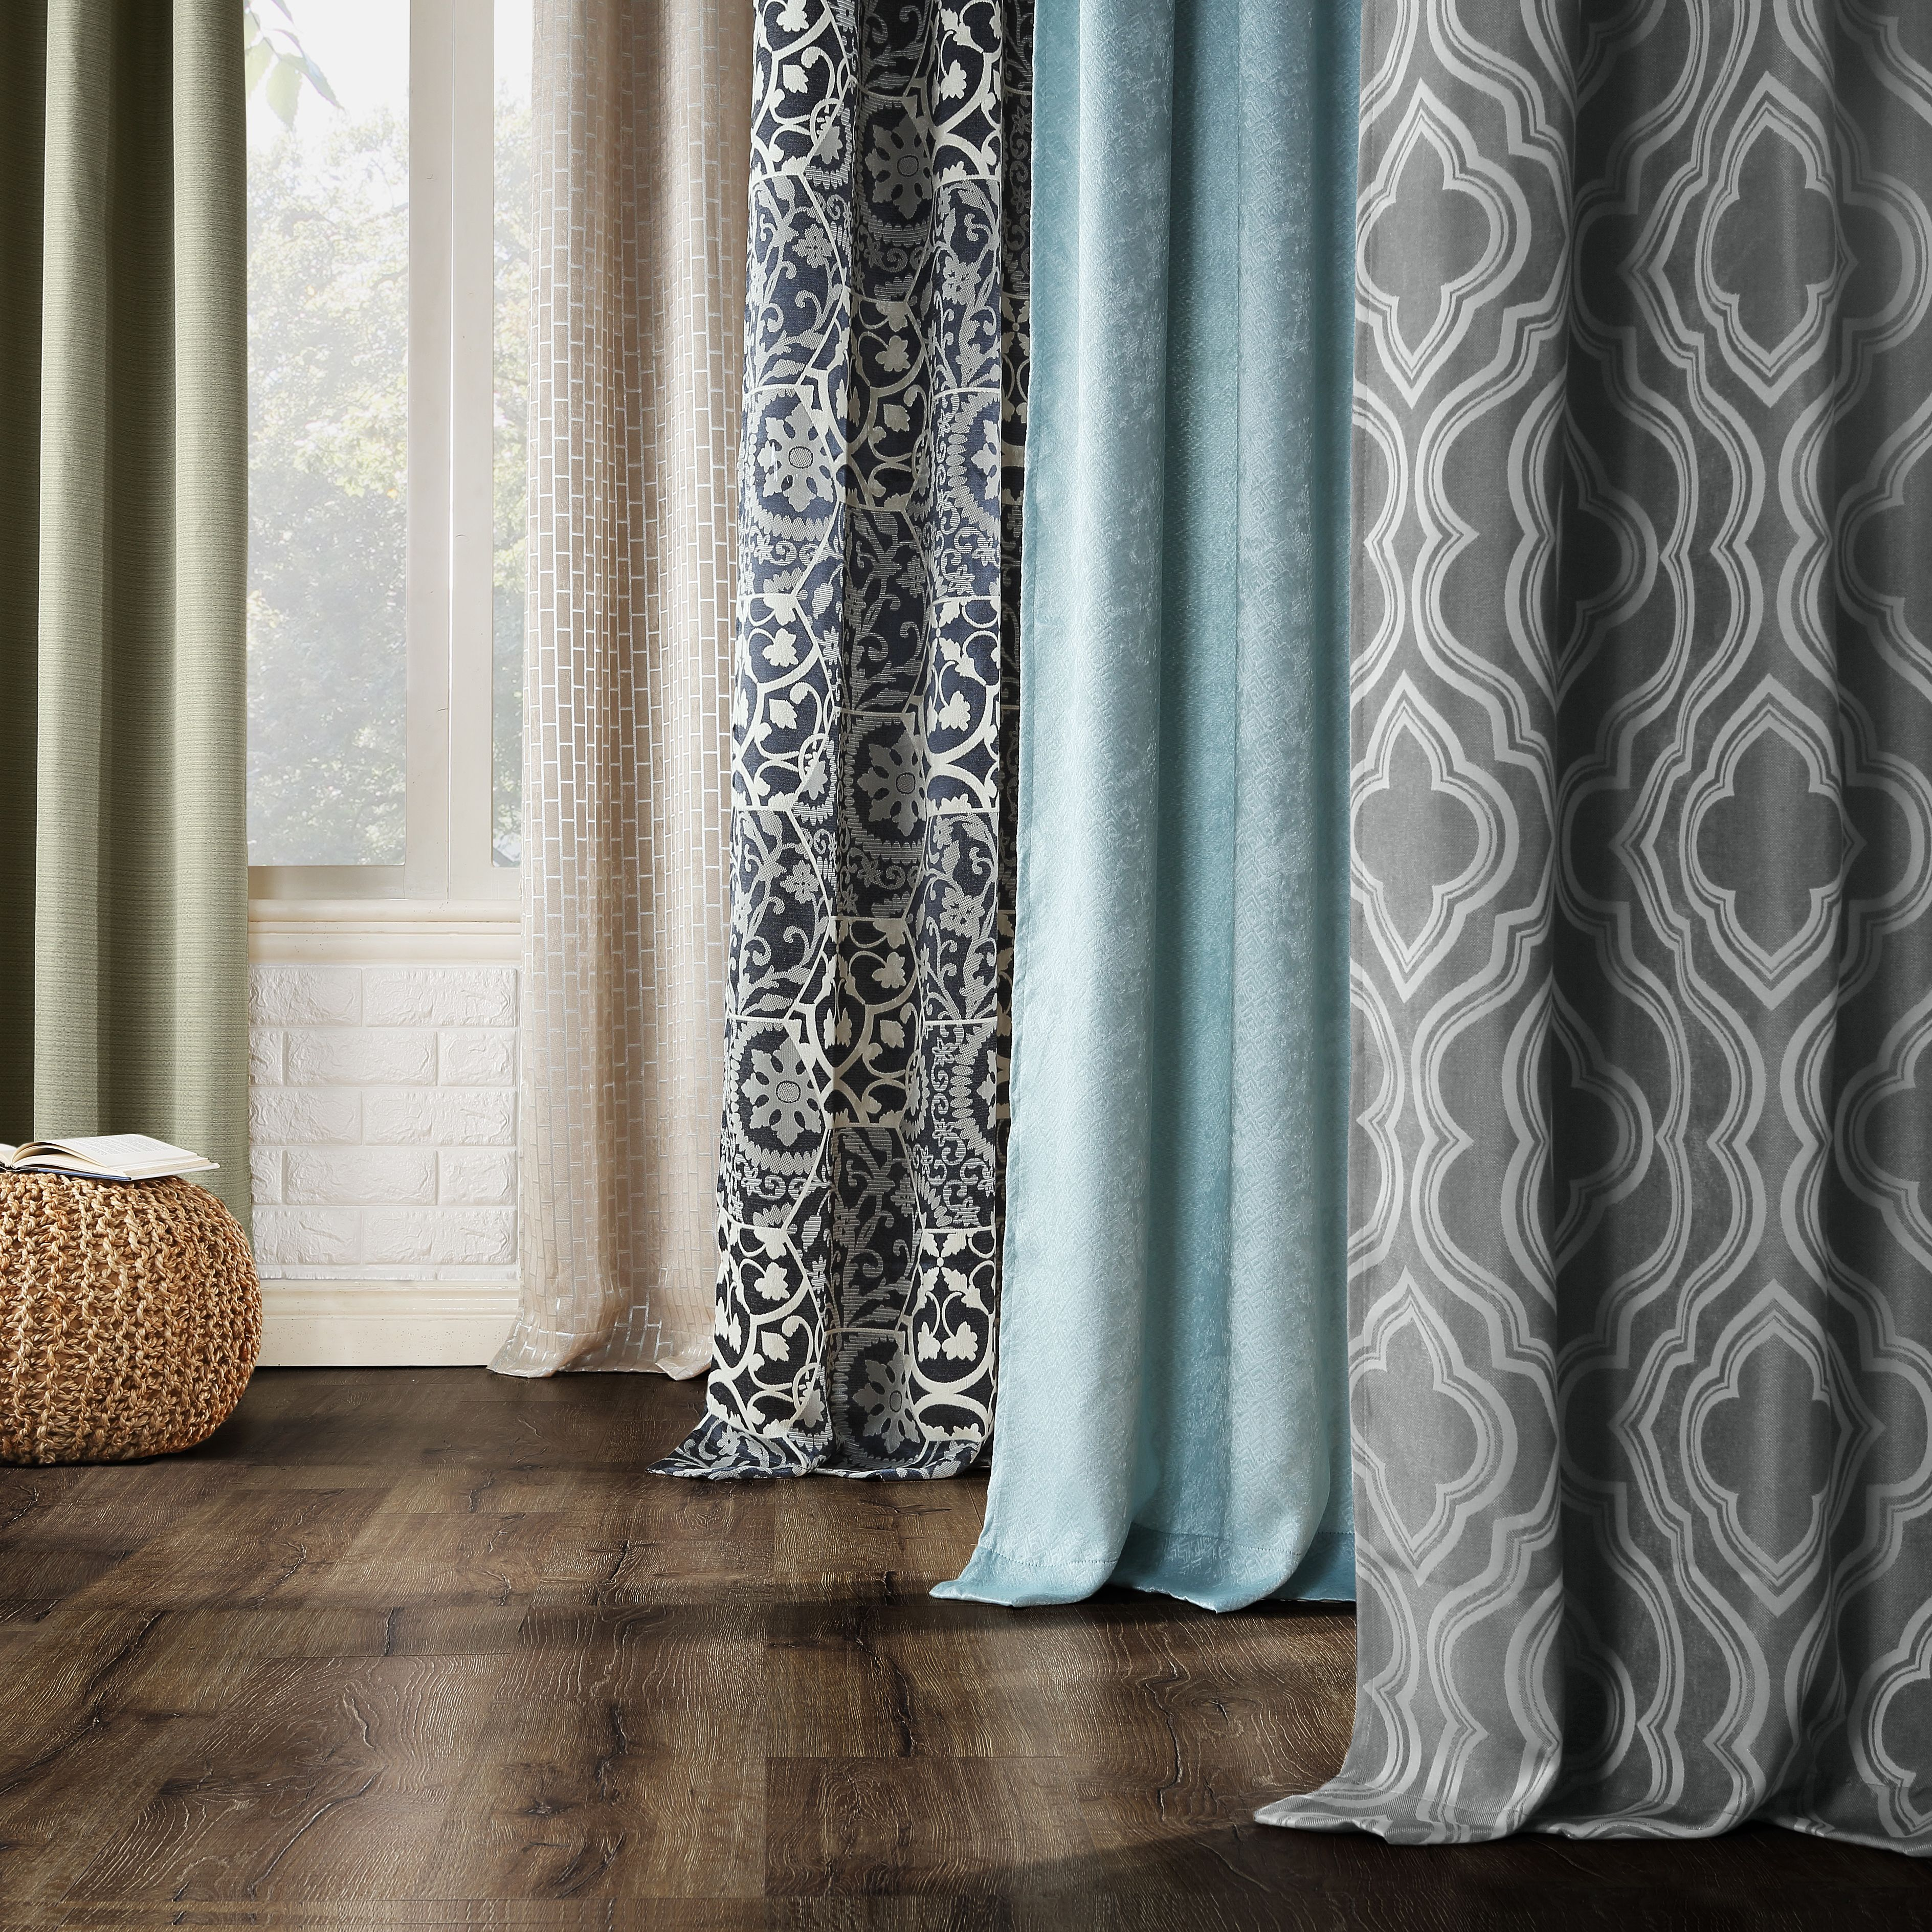 Home Panel Curtains Curtains Grommet Curtains